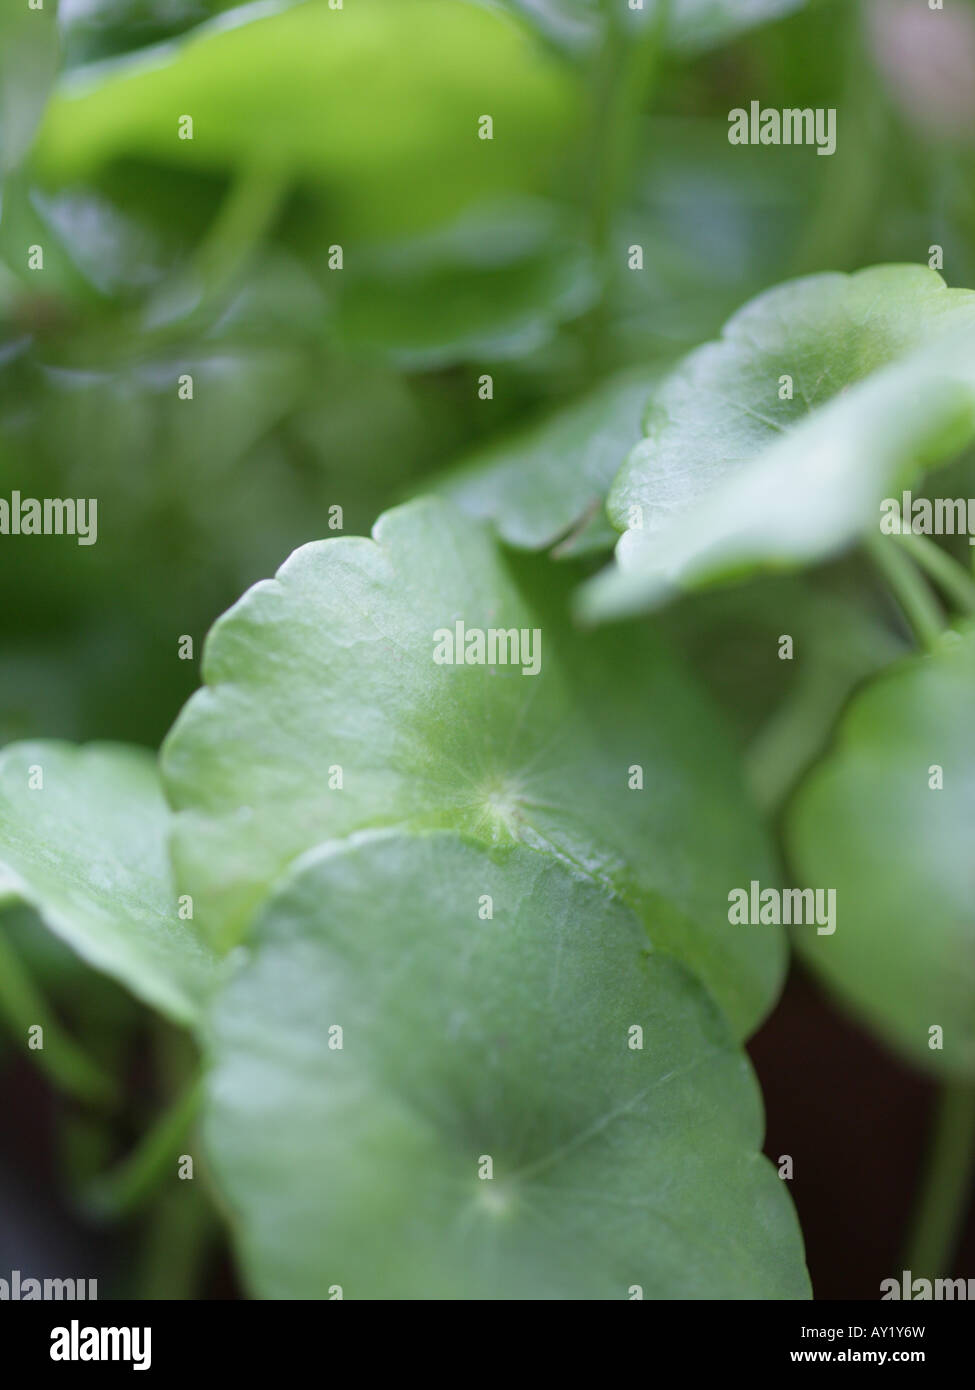 Close-up of leaves - Stock Image